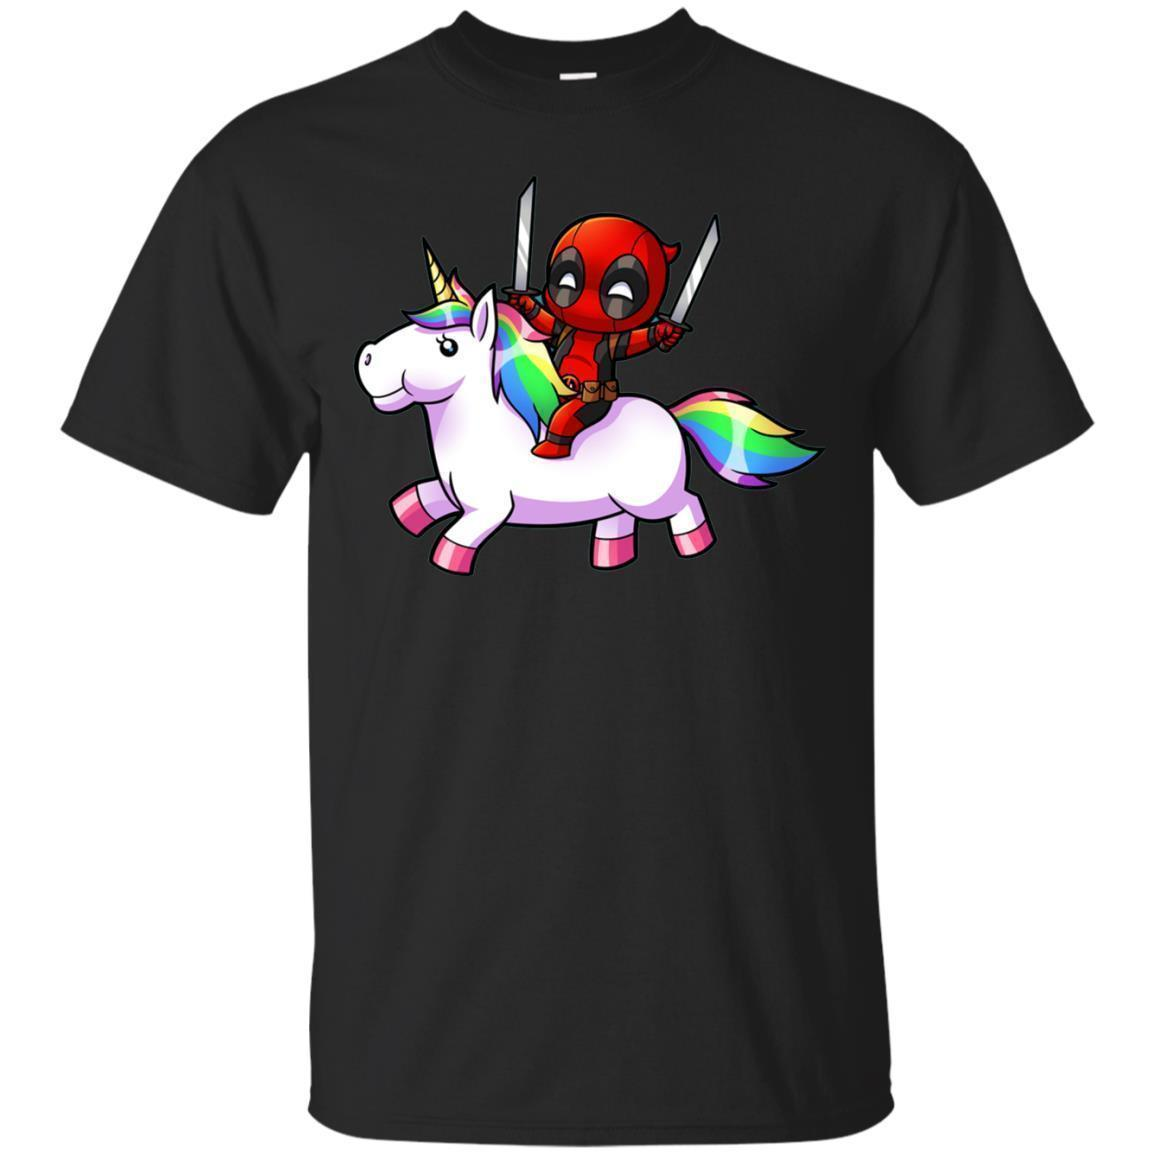 Deadpool Riding Unicorn Shirt